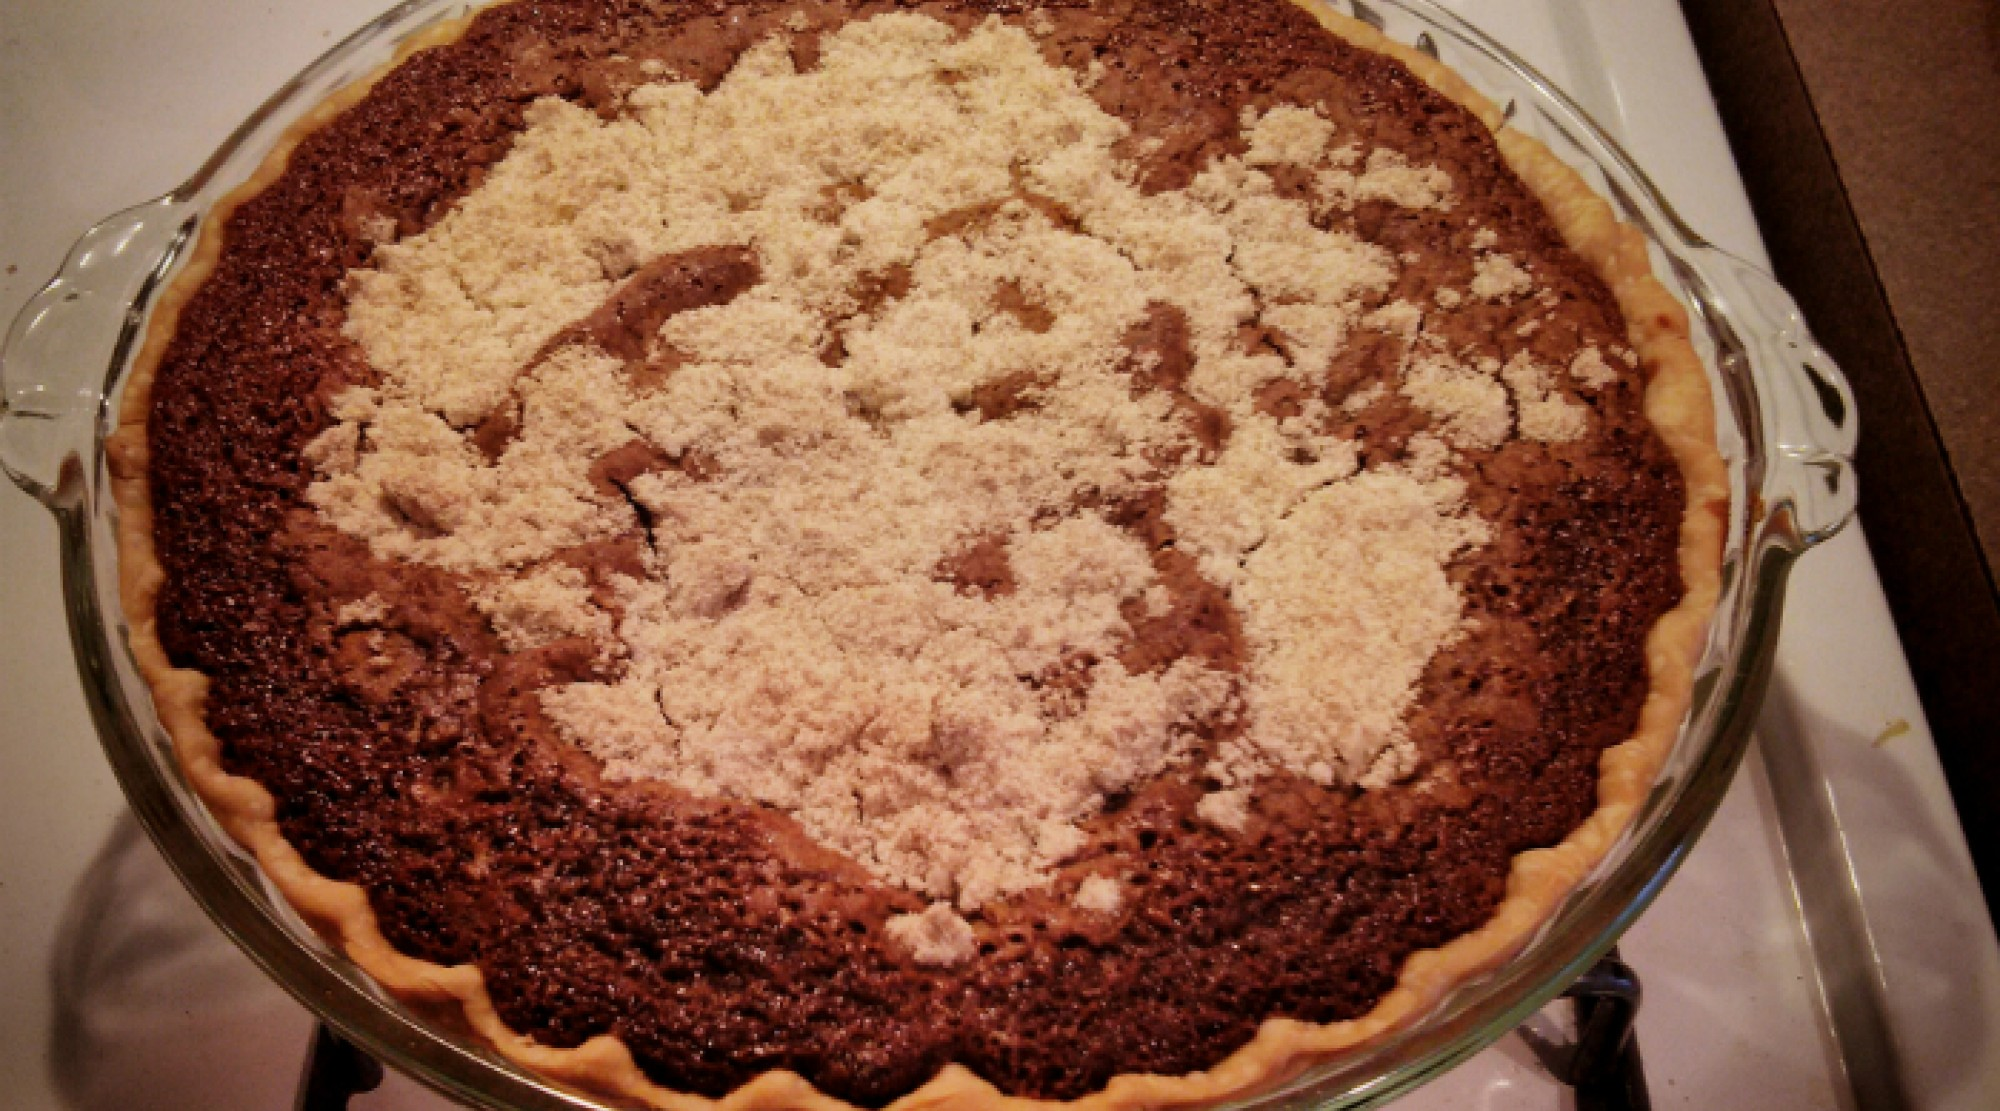 https://www.splendidtable.org/recipes/shoofly-pie